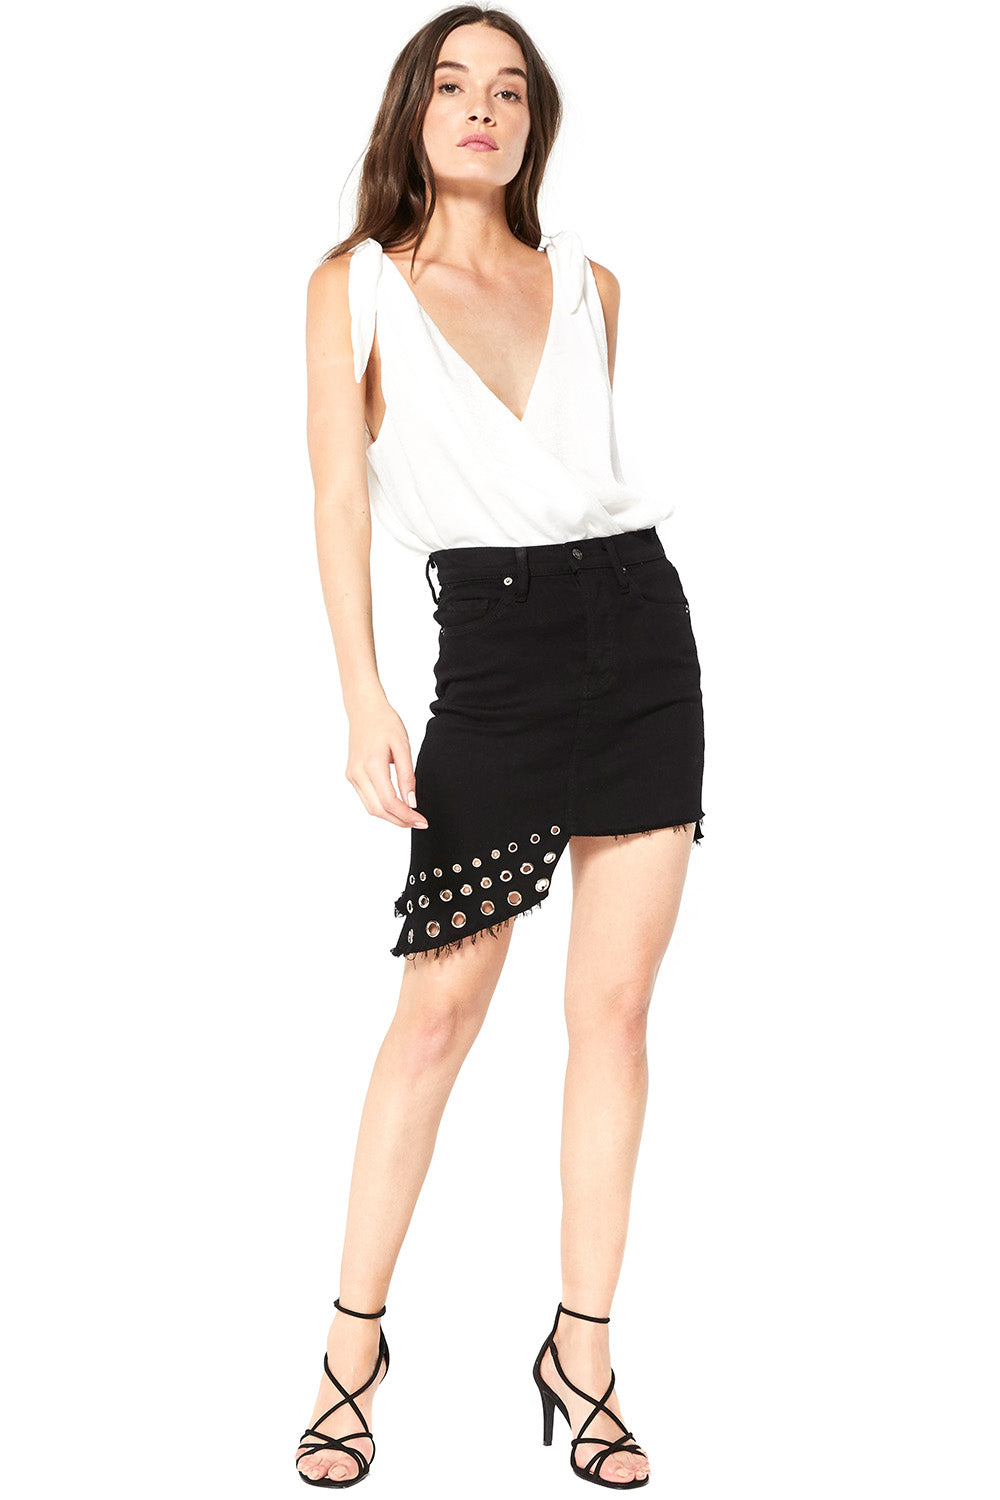 Superstar Asymmetrical Denim Mini-Skirt - MISA Los Angeles